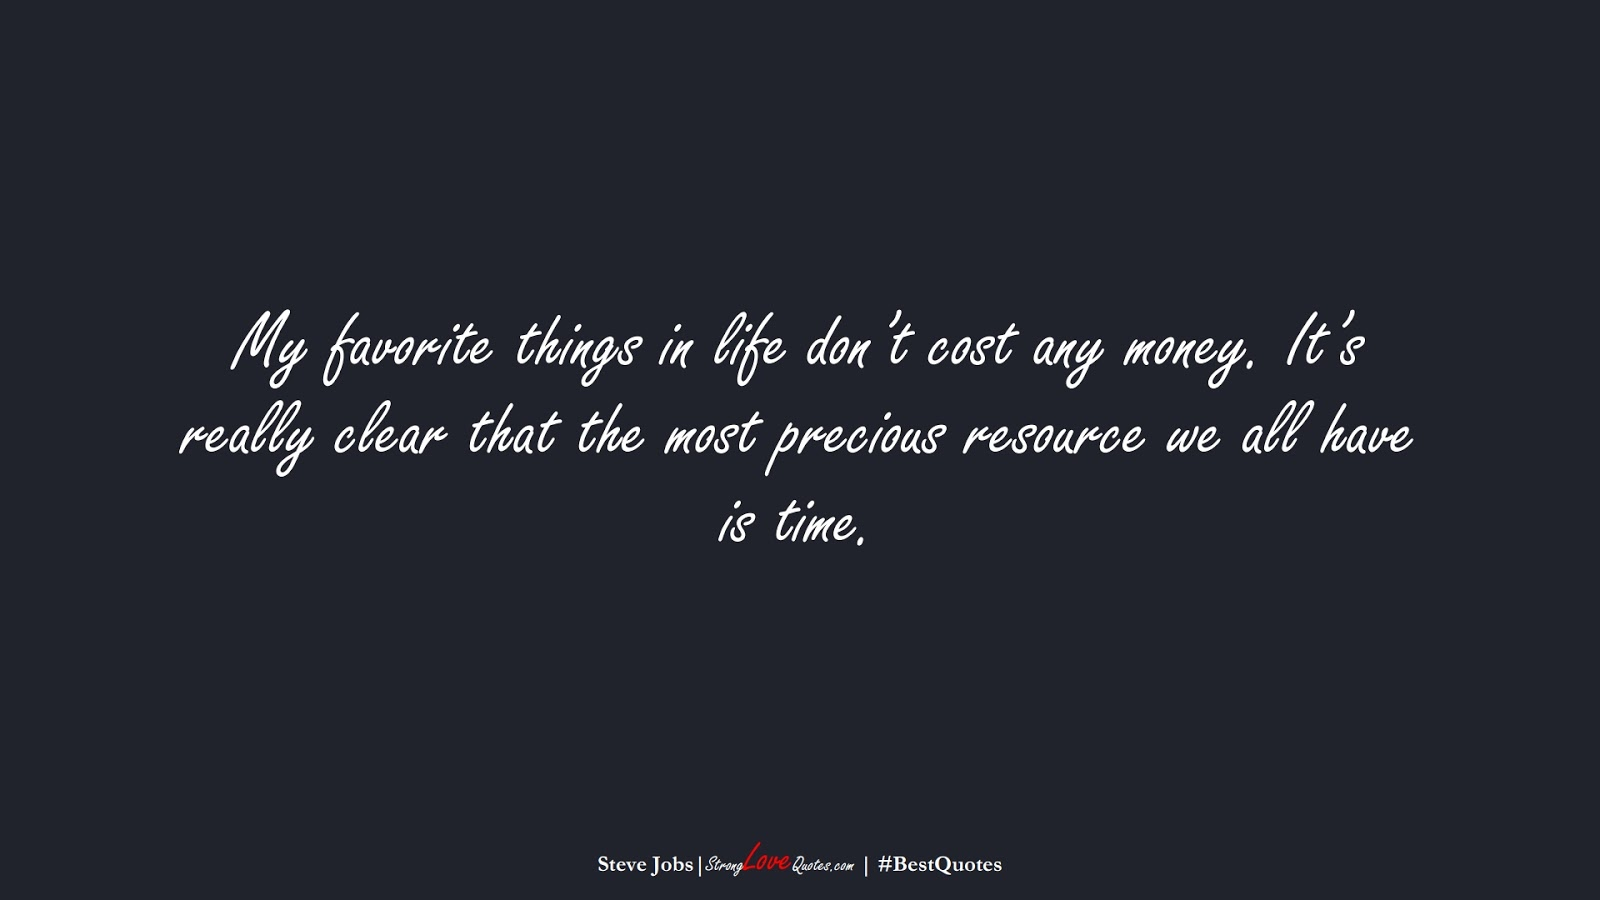 My favorite things in life don't cost any money. It's really clear that the most precious resource we all have is time. (Steve Jobs);  #BestQuotes